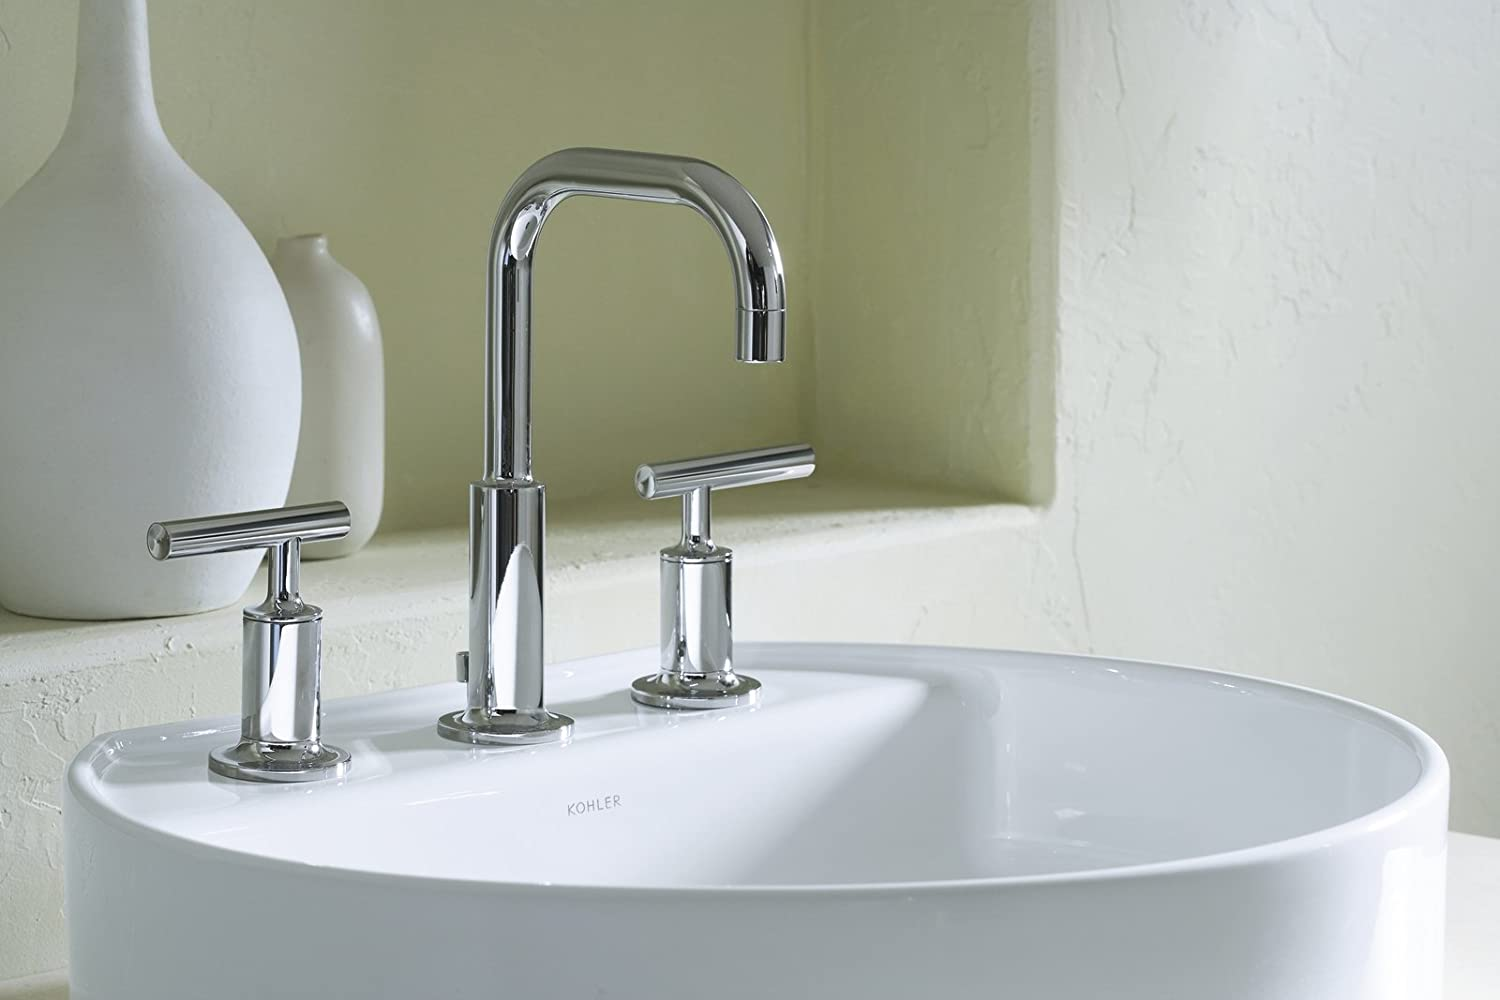 Great KOHLER K 14406 4 CP Purist Widespread Lavatory Faucet, Polished Chrome    Touch On Bathroom Sink Faucets   Amazon.com